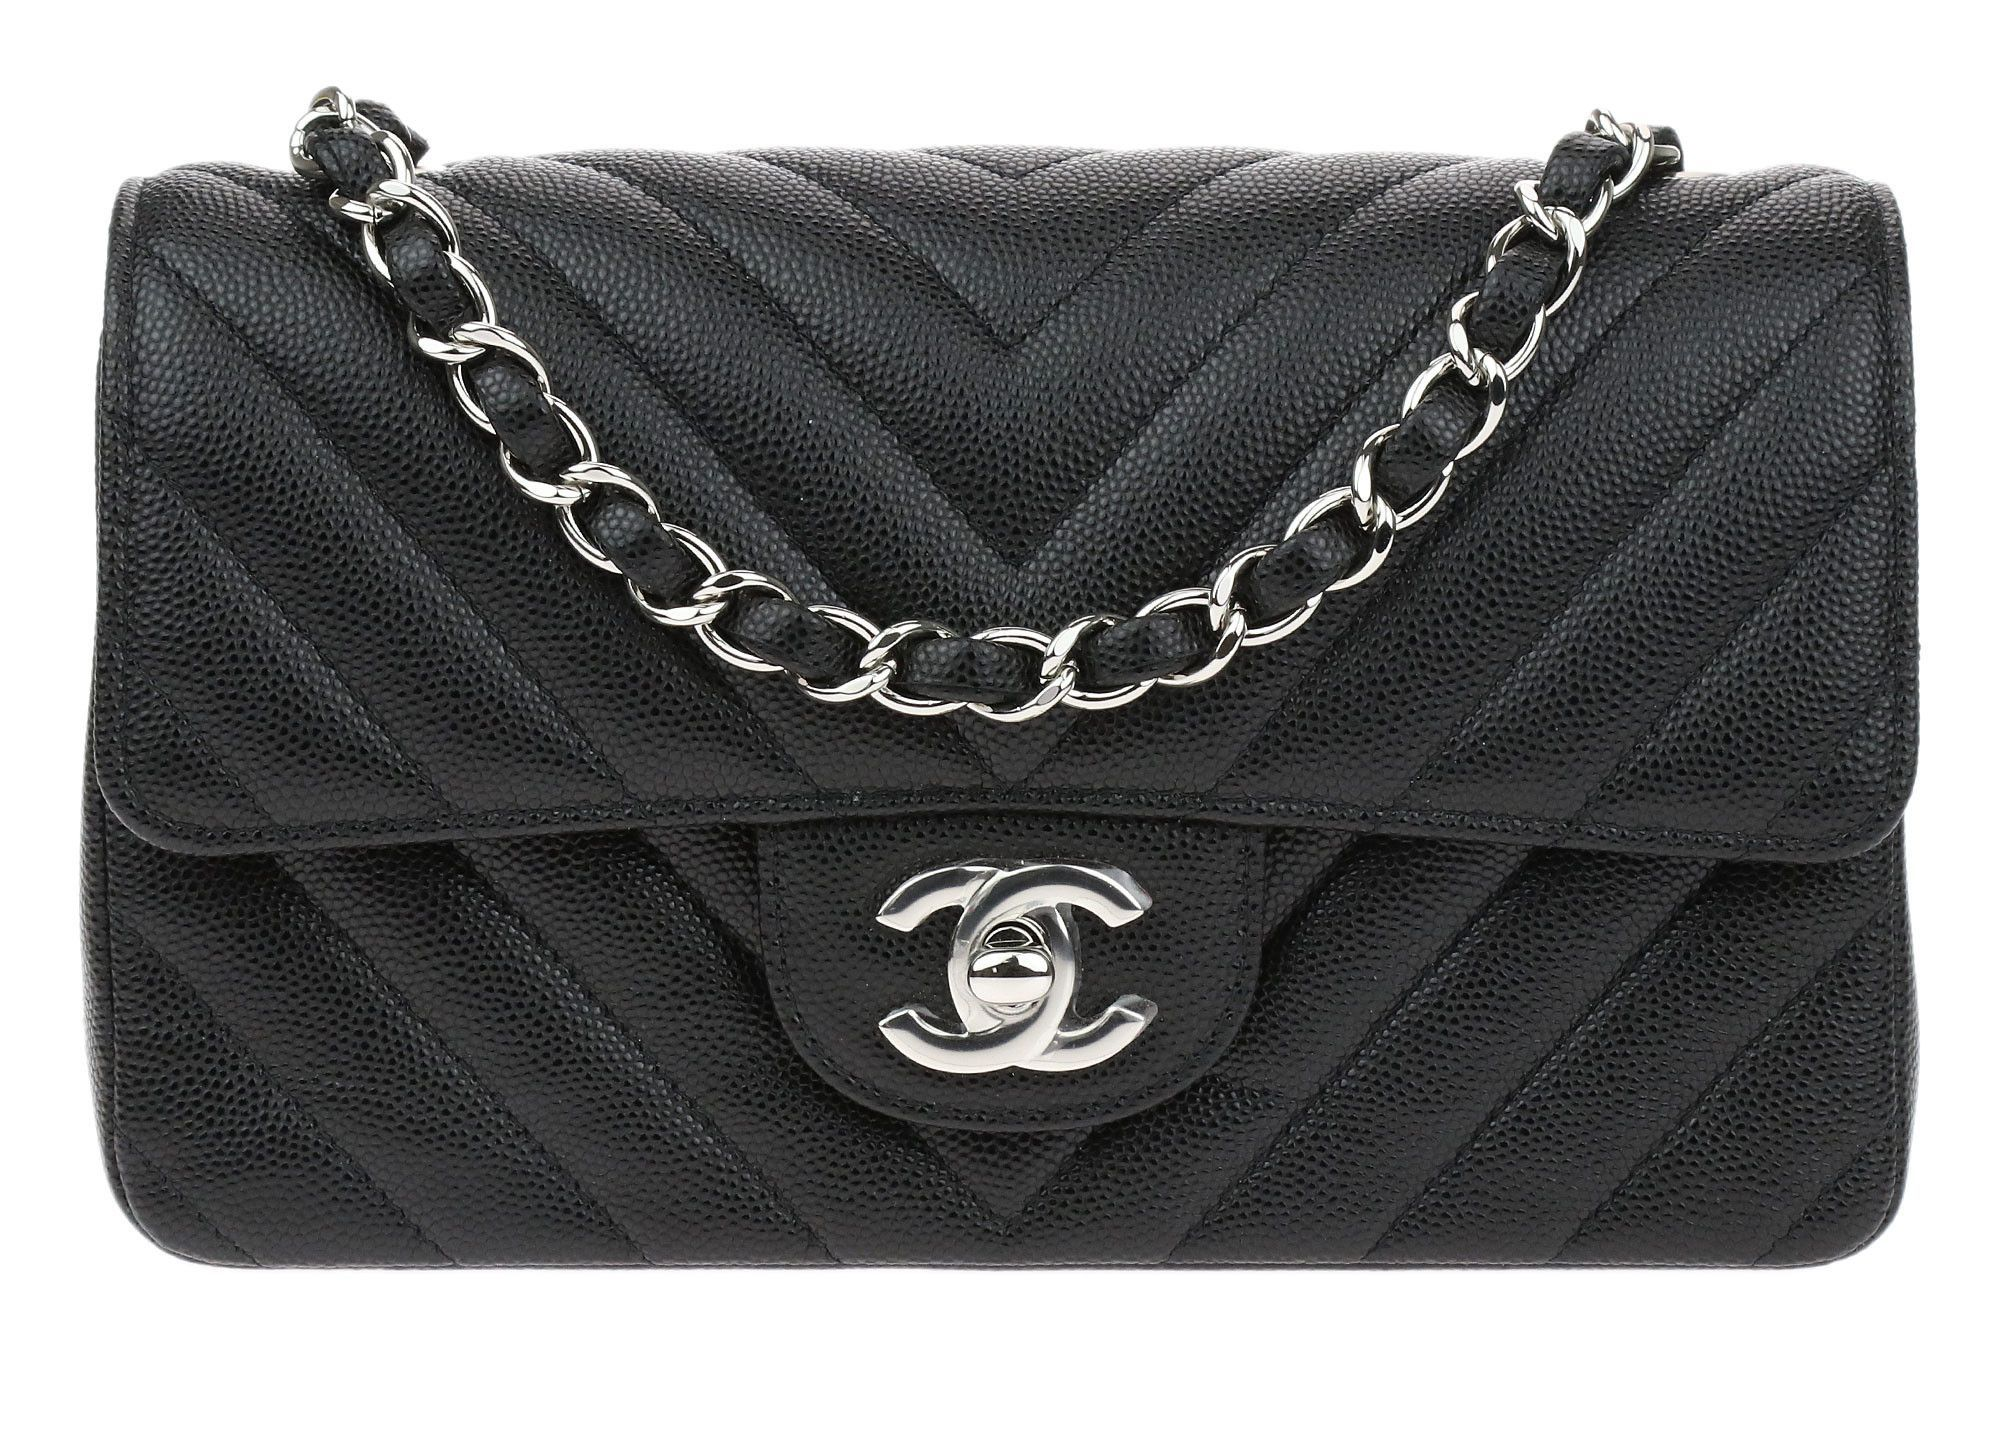 964b6e7bd06f Chanel 17S Black Caviar Leather Chevron Quilted Rectangular Mini Flap Bag